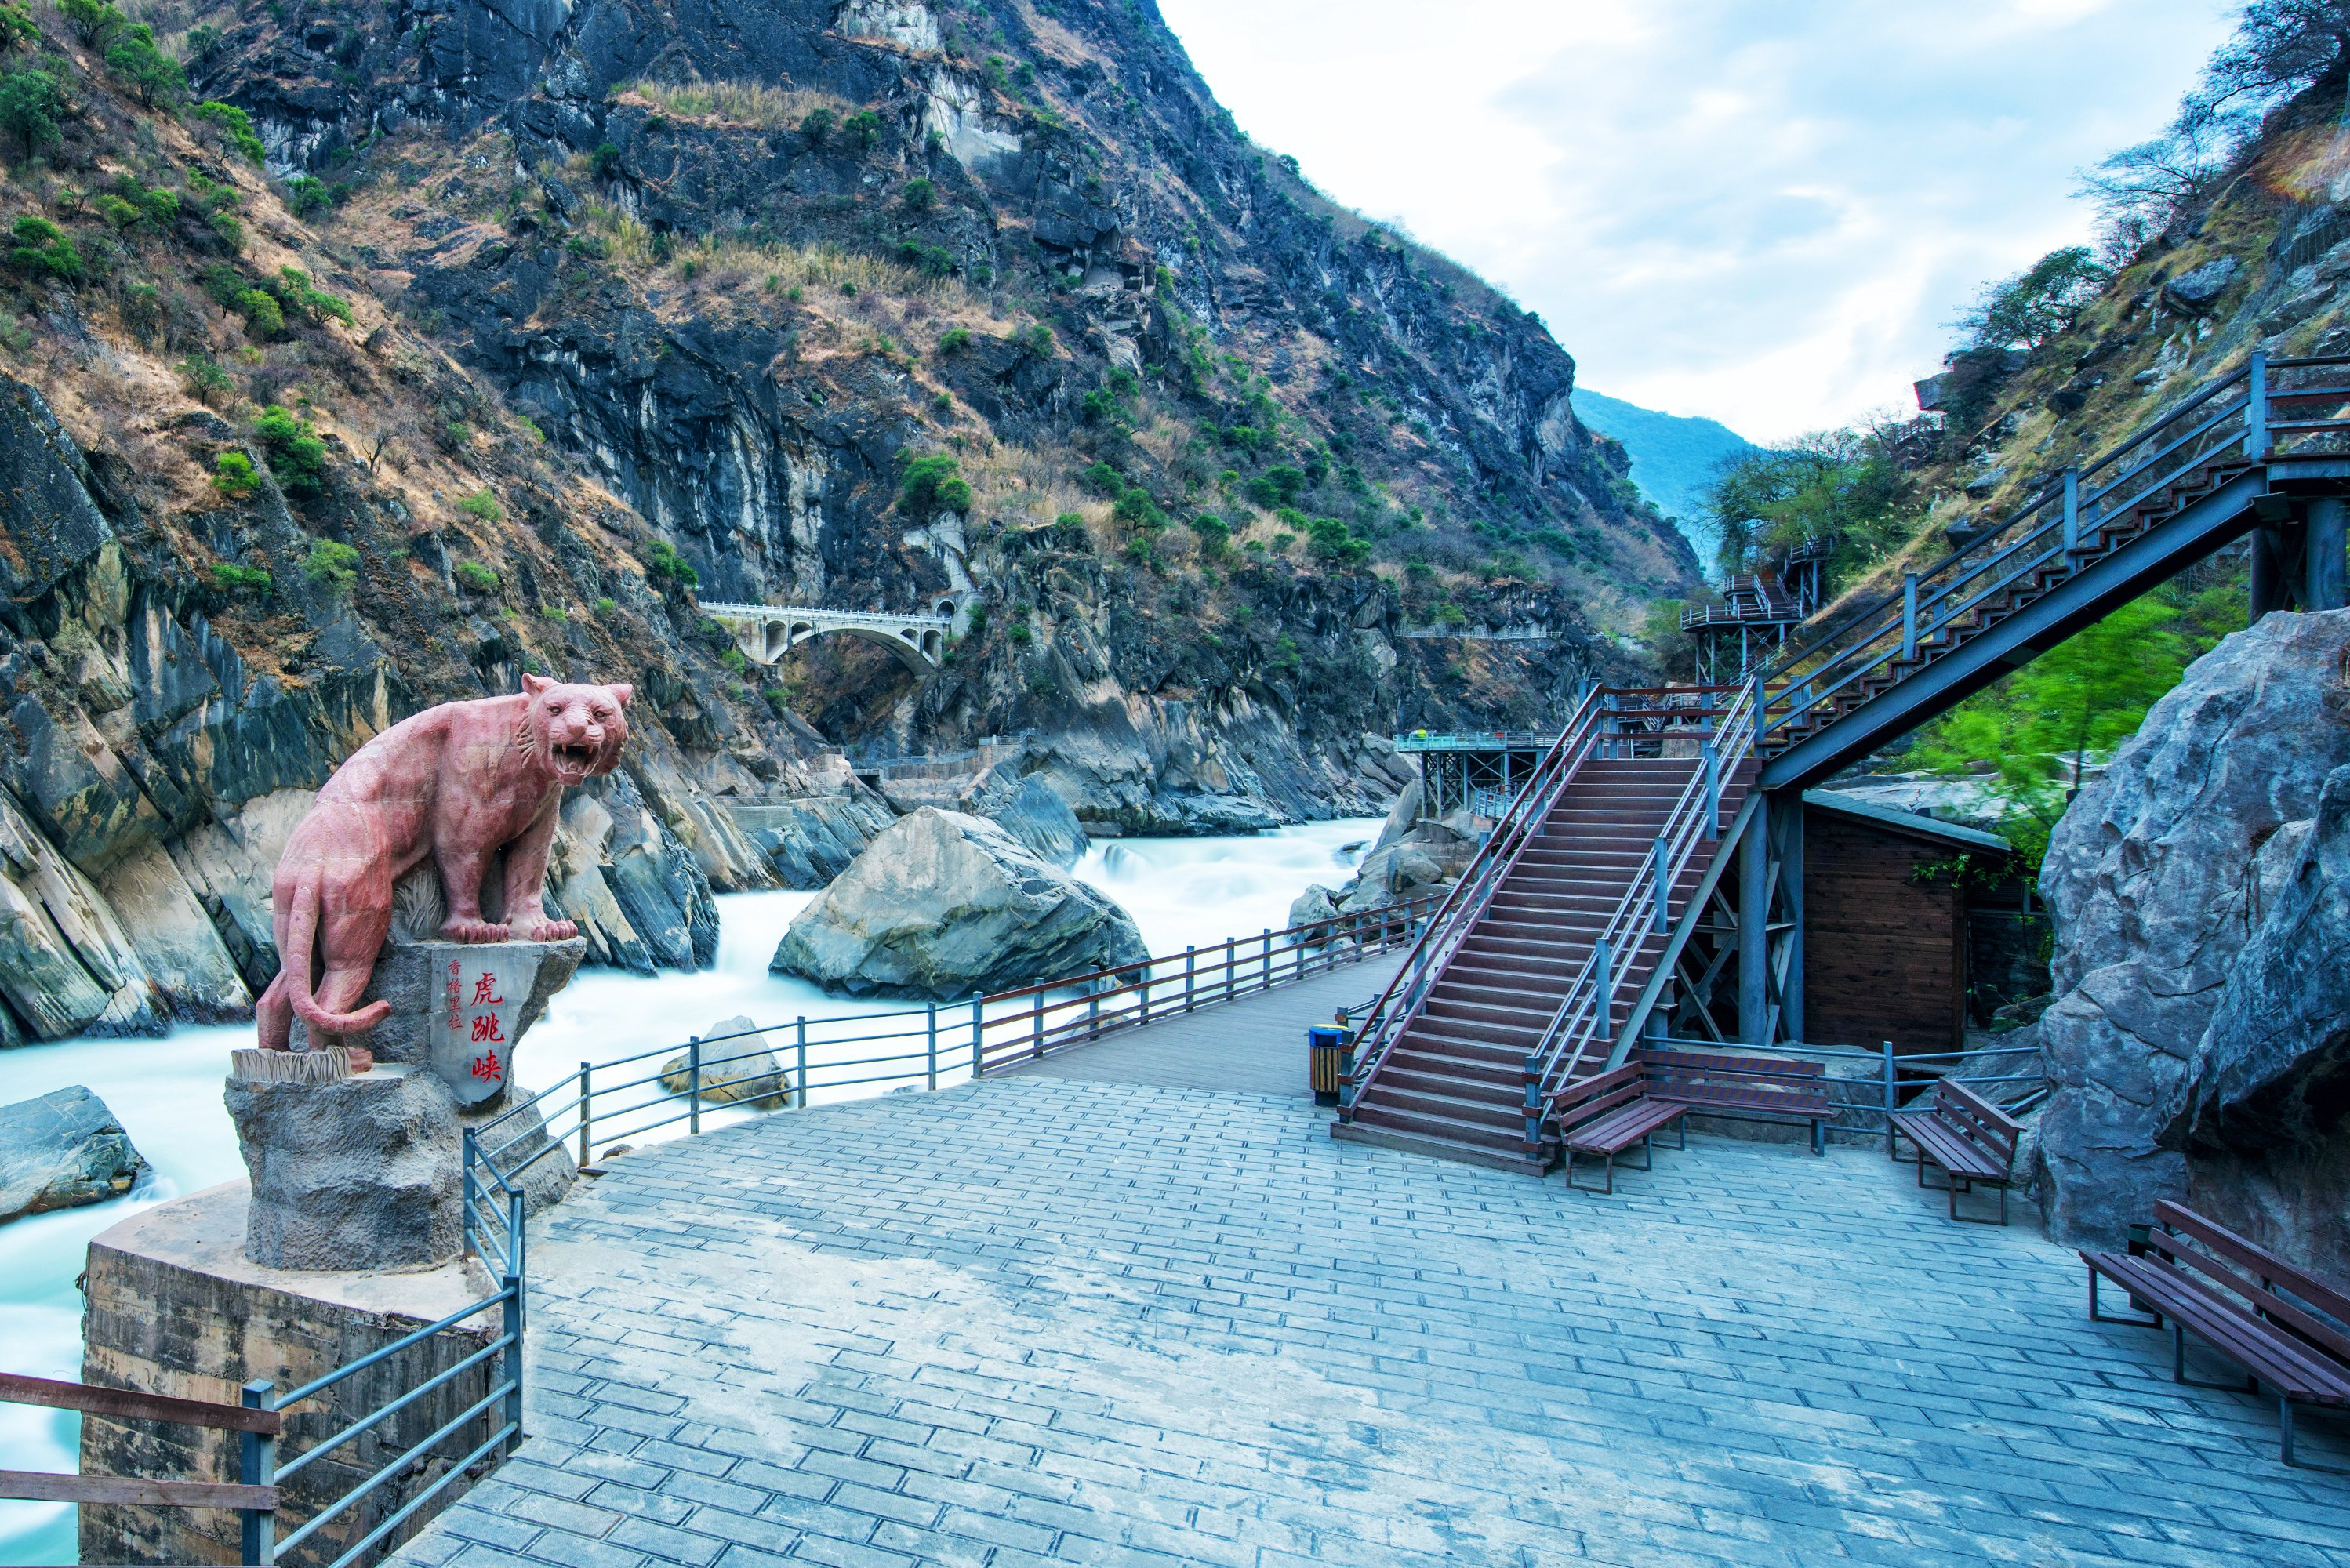 Tiger Leaping Gorge (Shangri-La section) Ticket